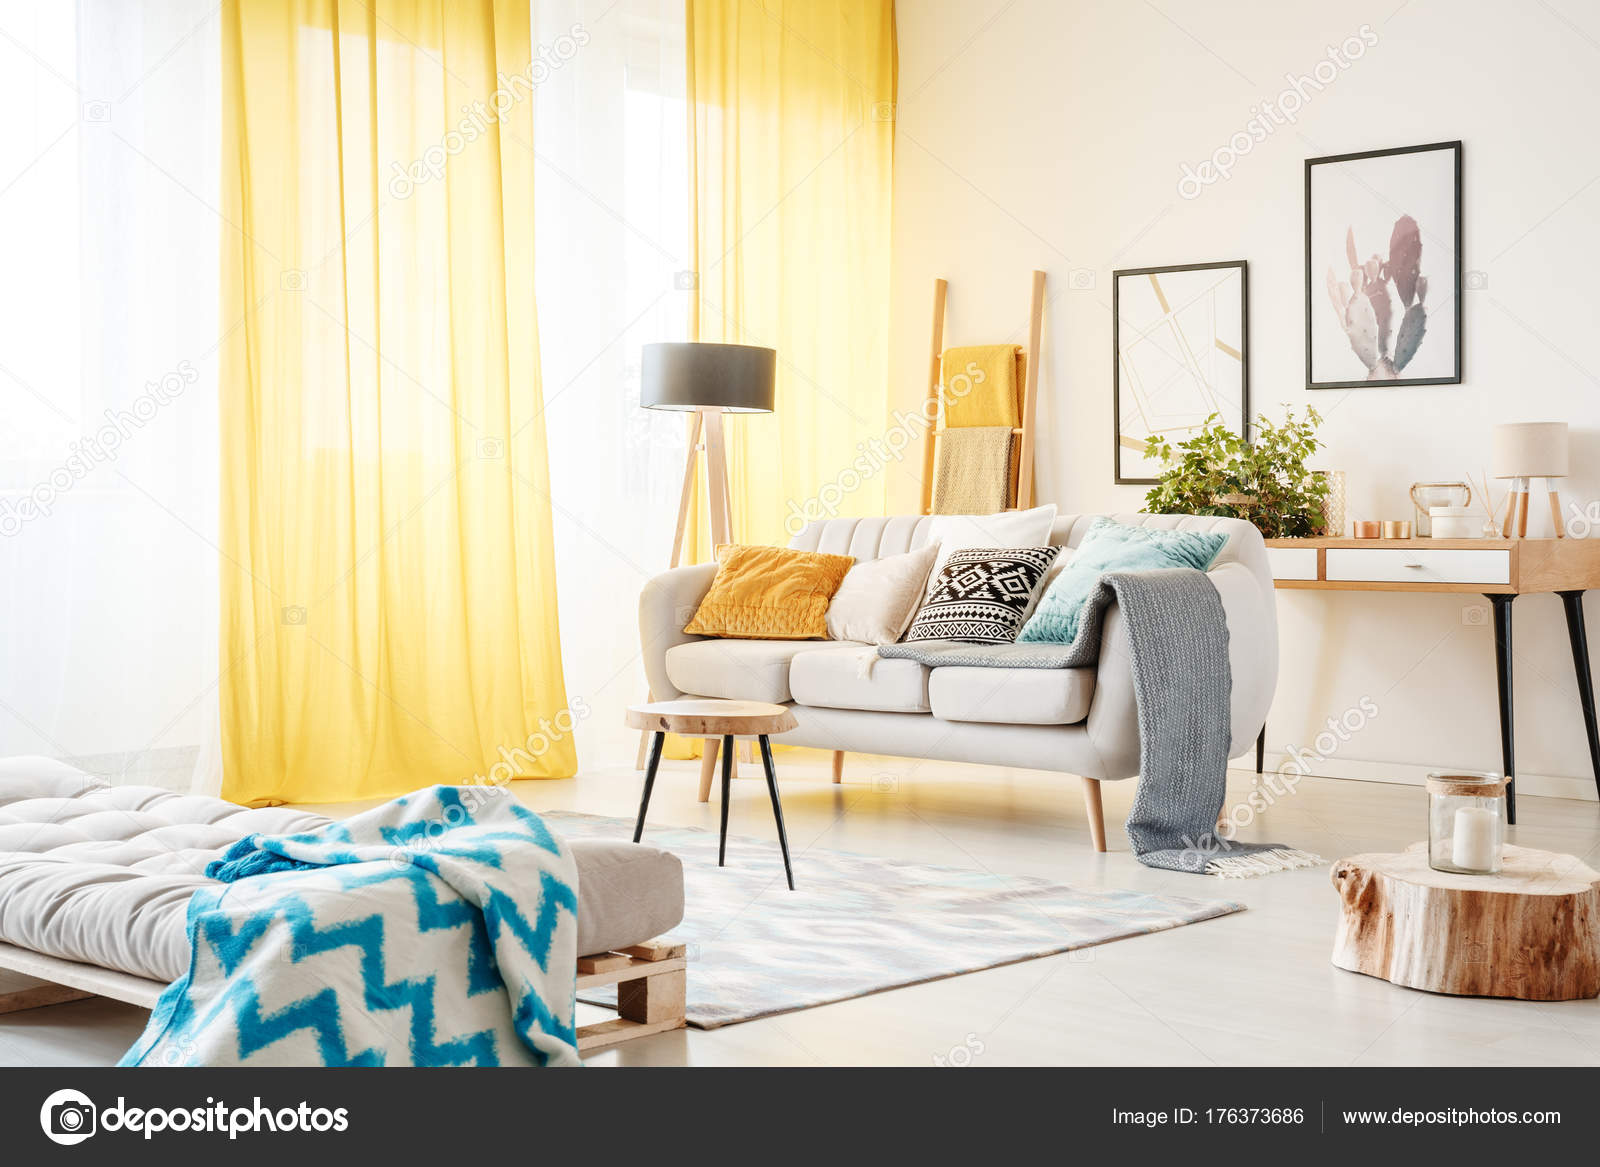 Living Room With Yellow Curtains Stock Photo C Photographee Eu 176373686